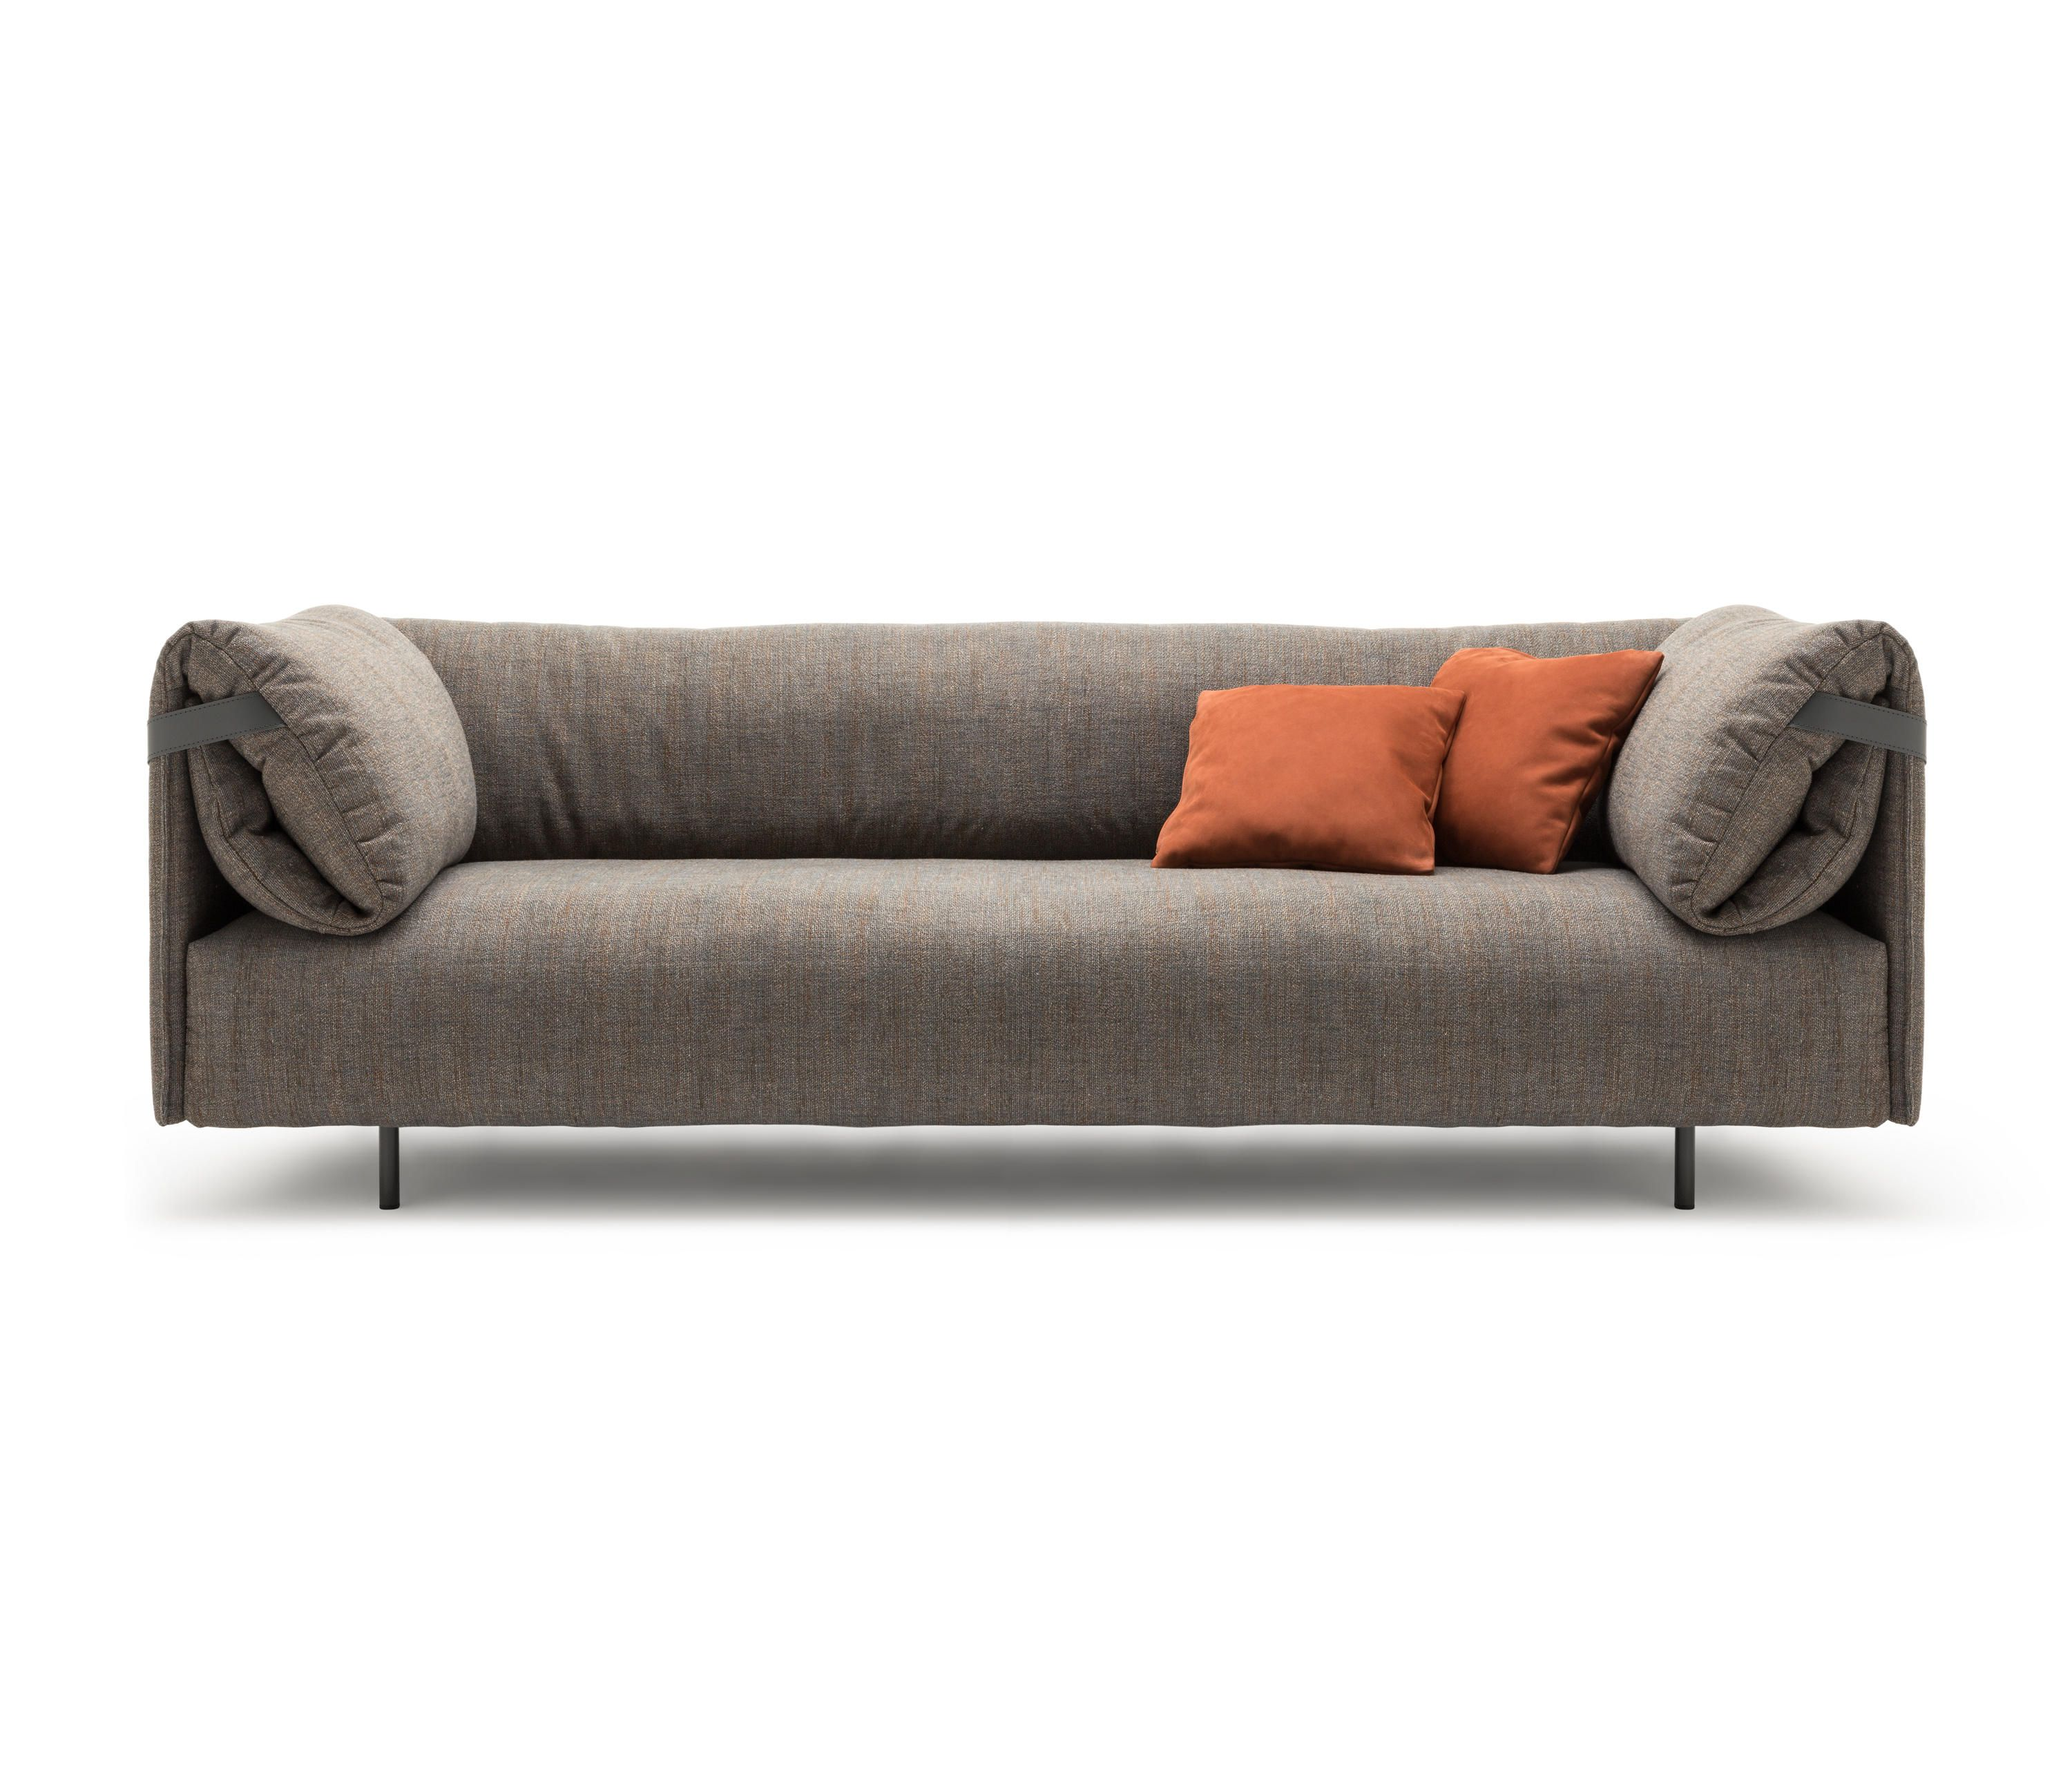 Rolf Benz ALMA sofa is available in 3 different lengths Find the